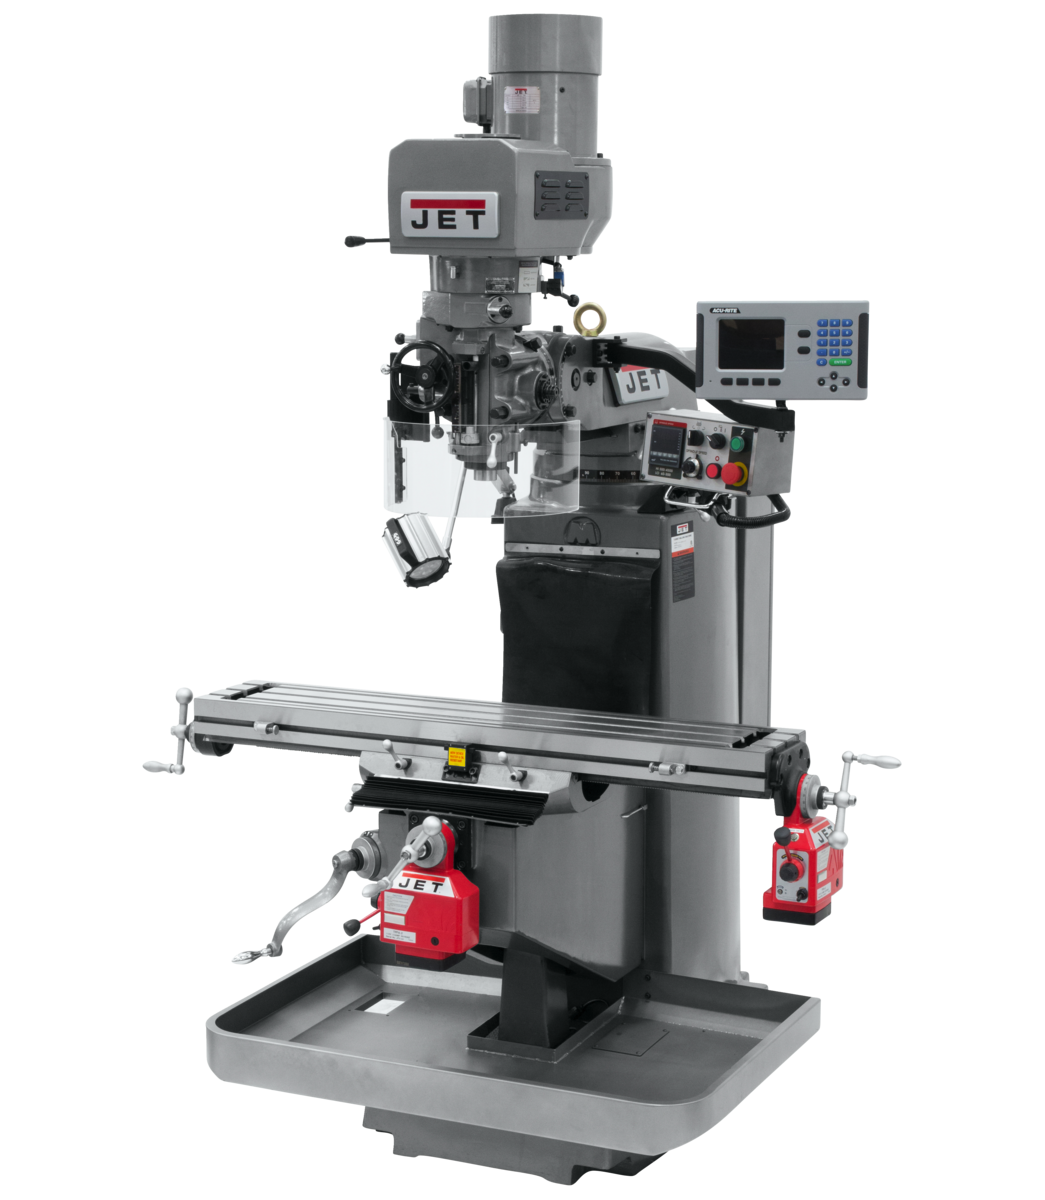 JTM-949EVS Mill With Acu-Rite 203 DRO With X and Y-Axis Powerfeeds